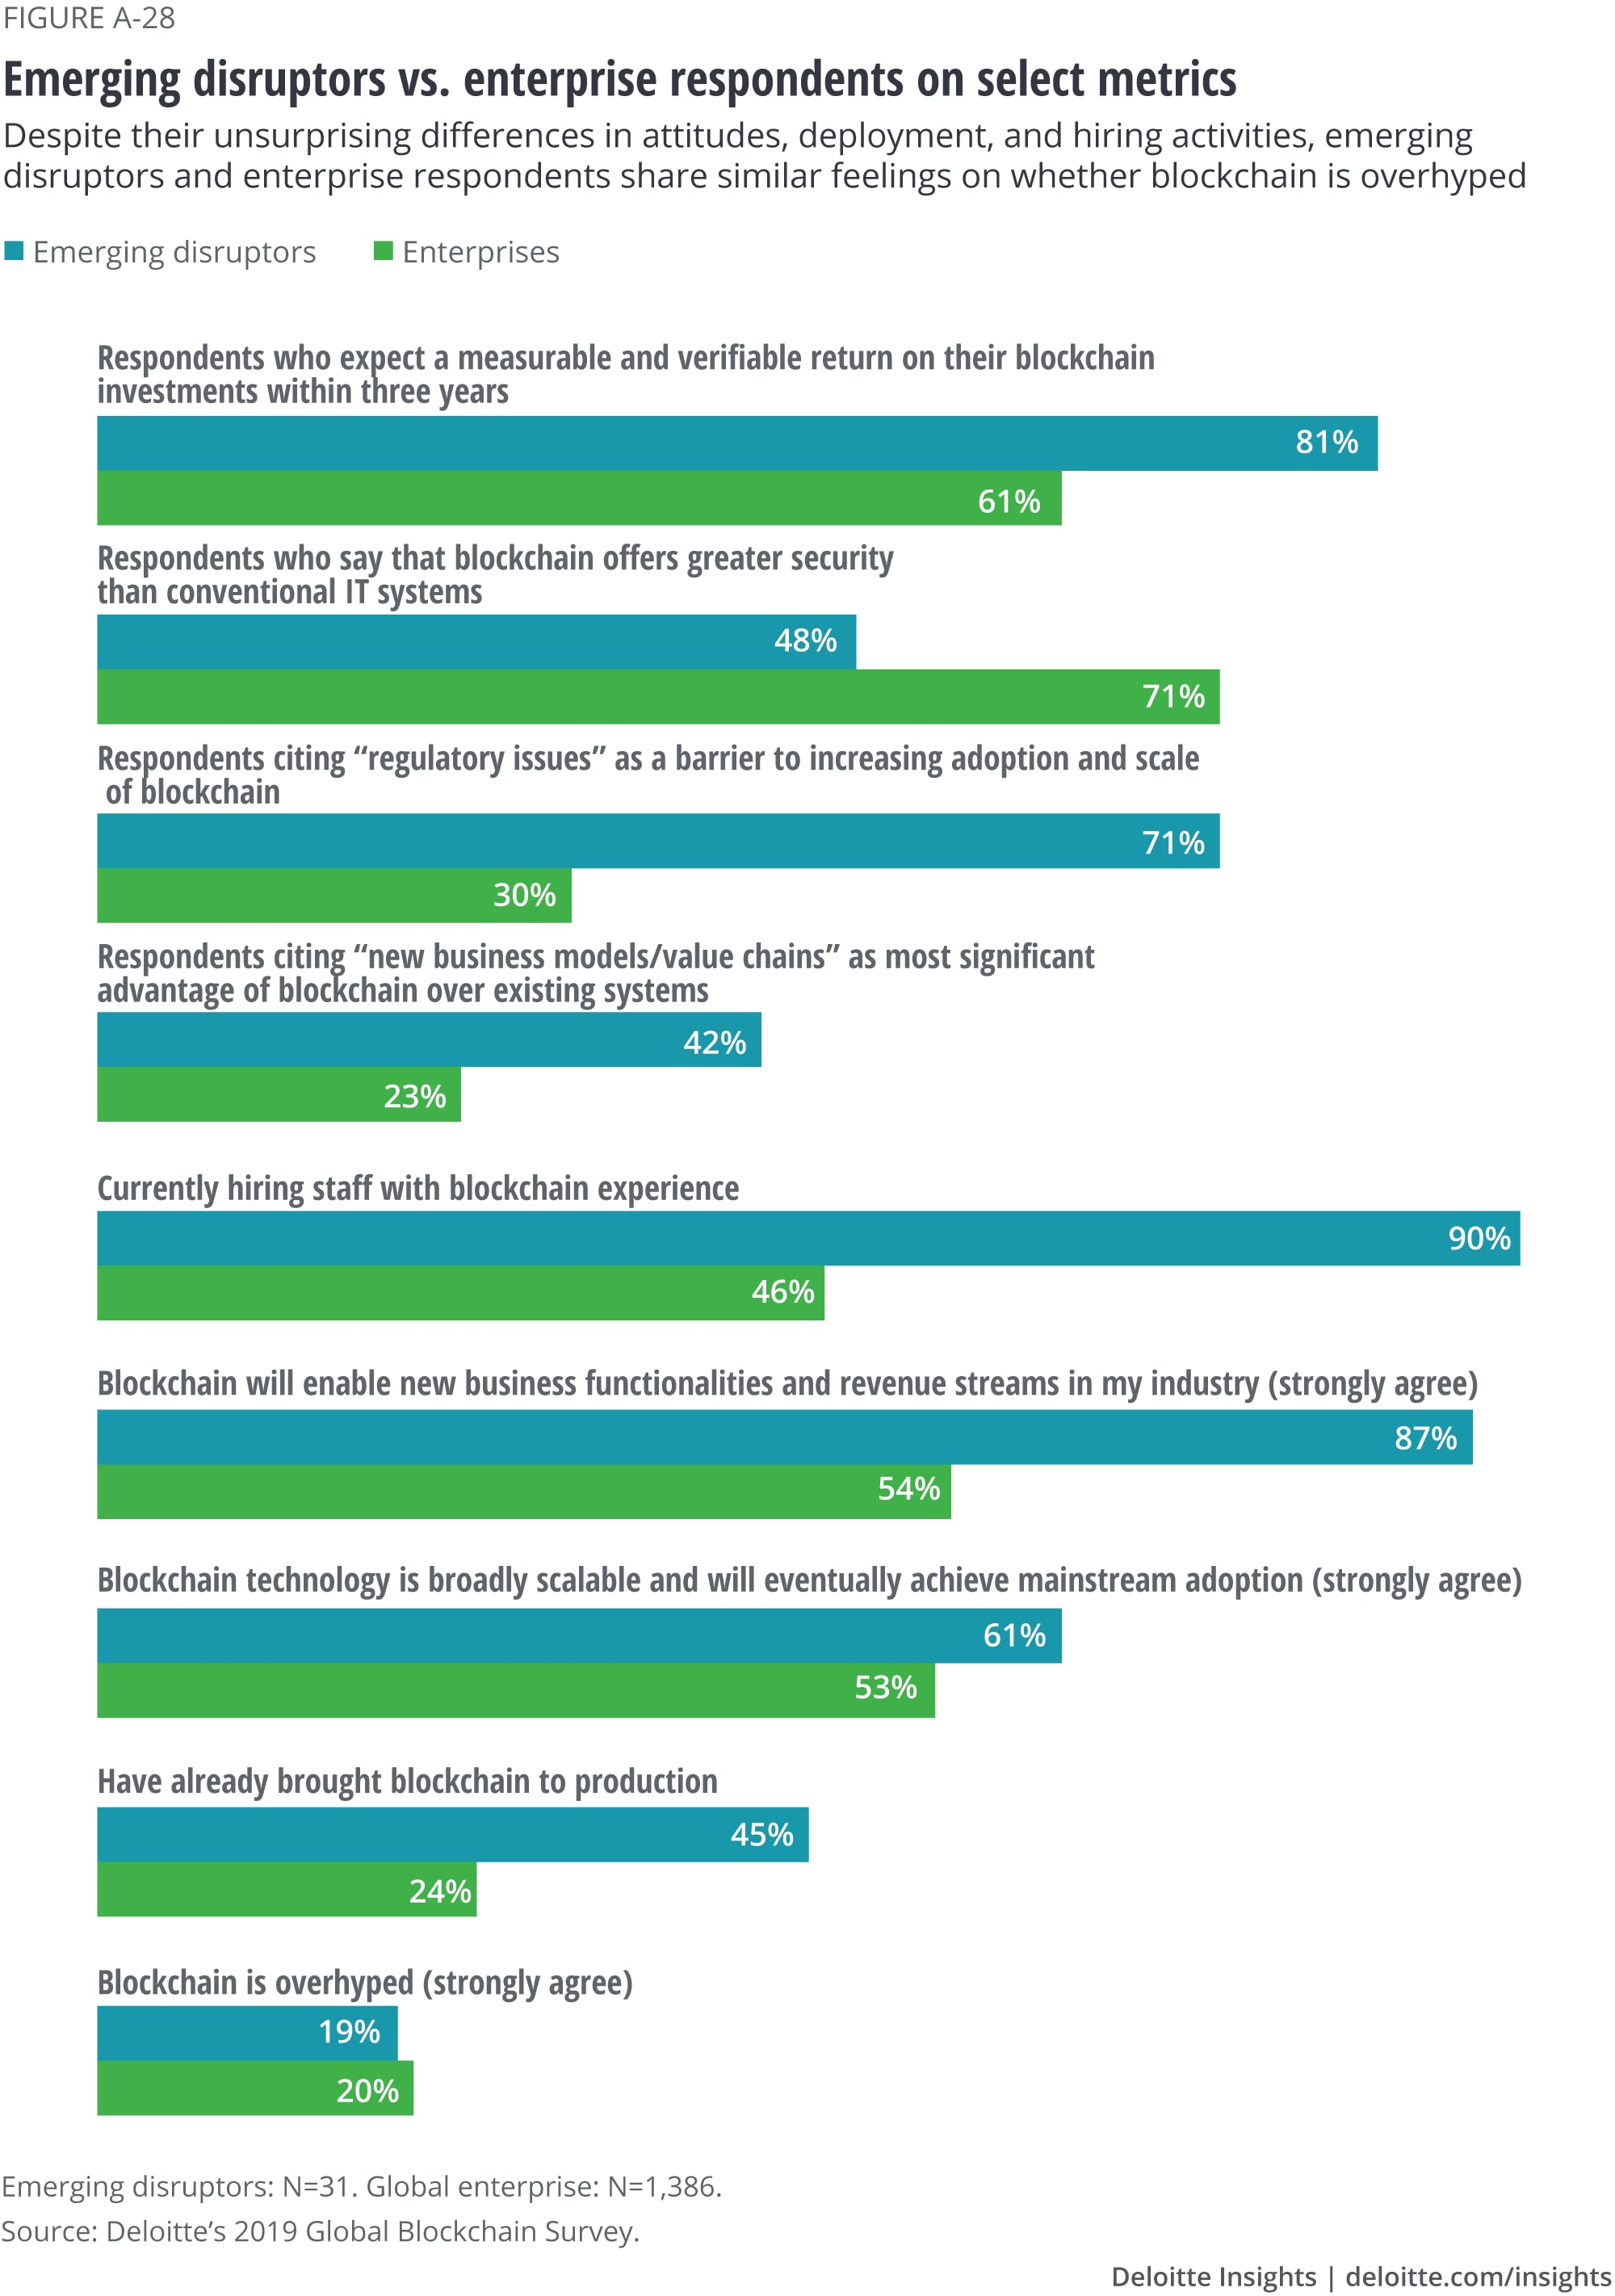 Emerging disruptors vs. enterprise respondents on select metrics